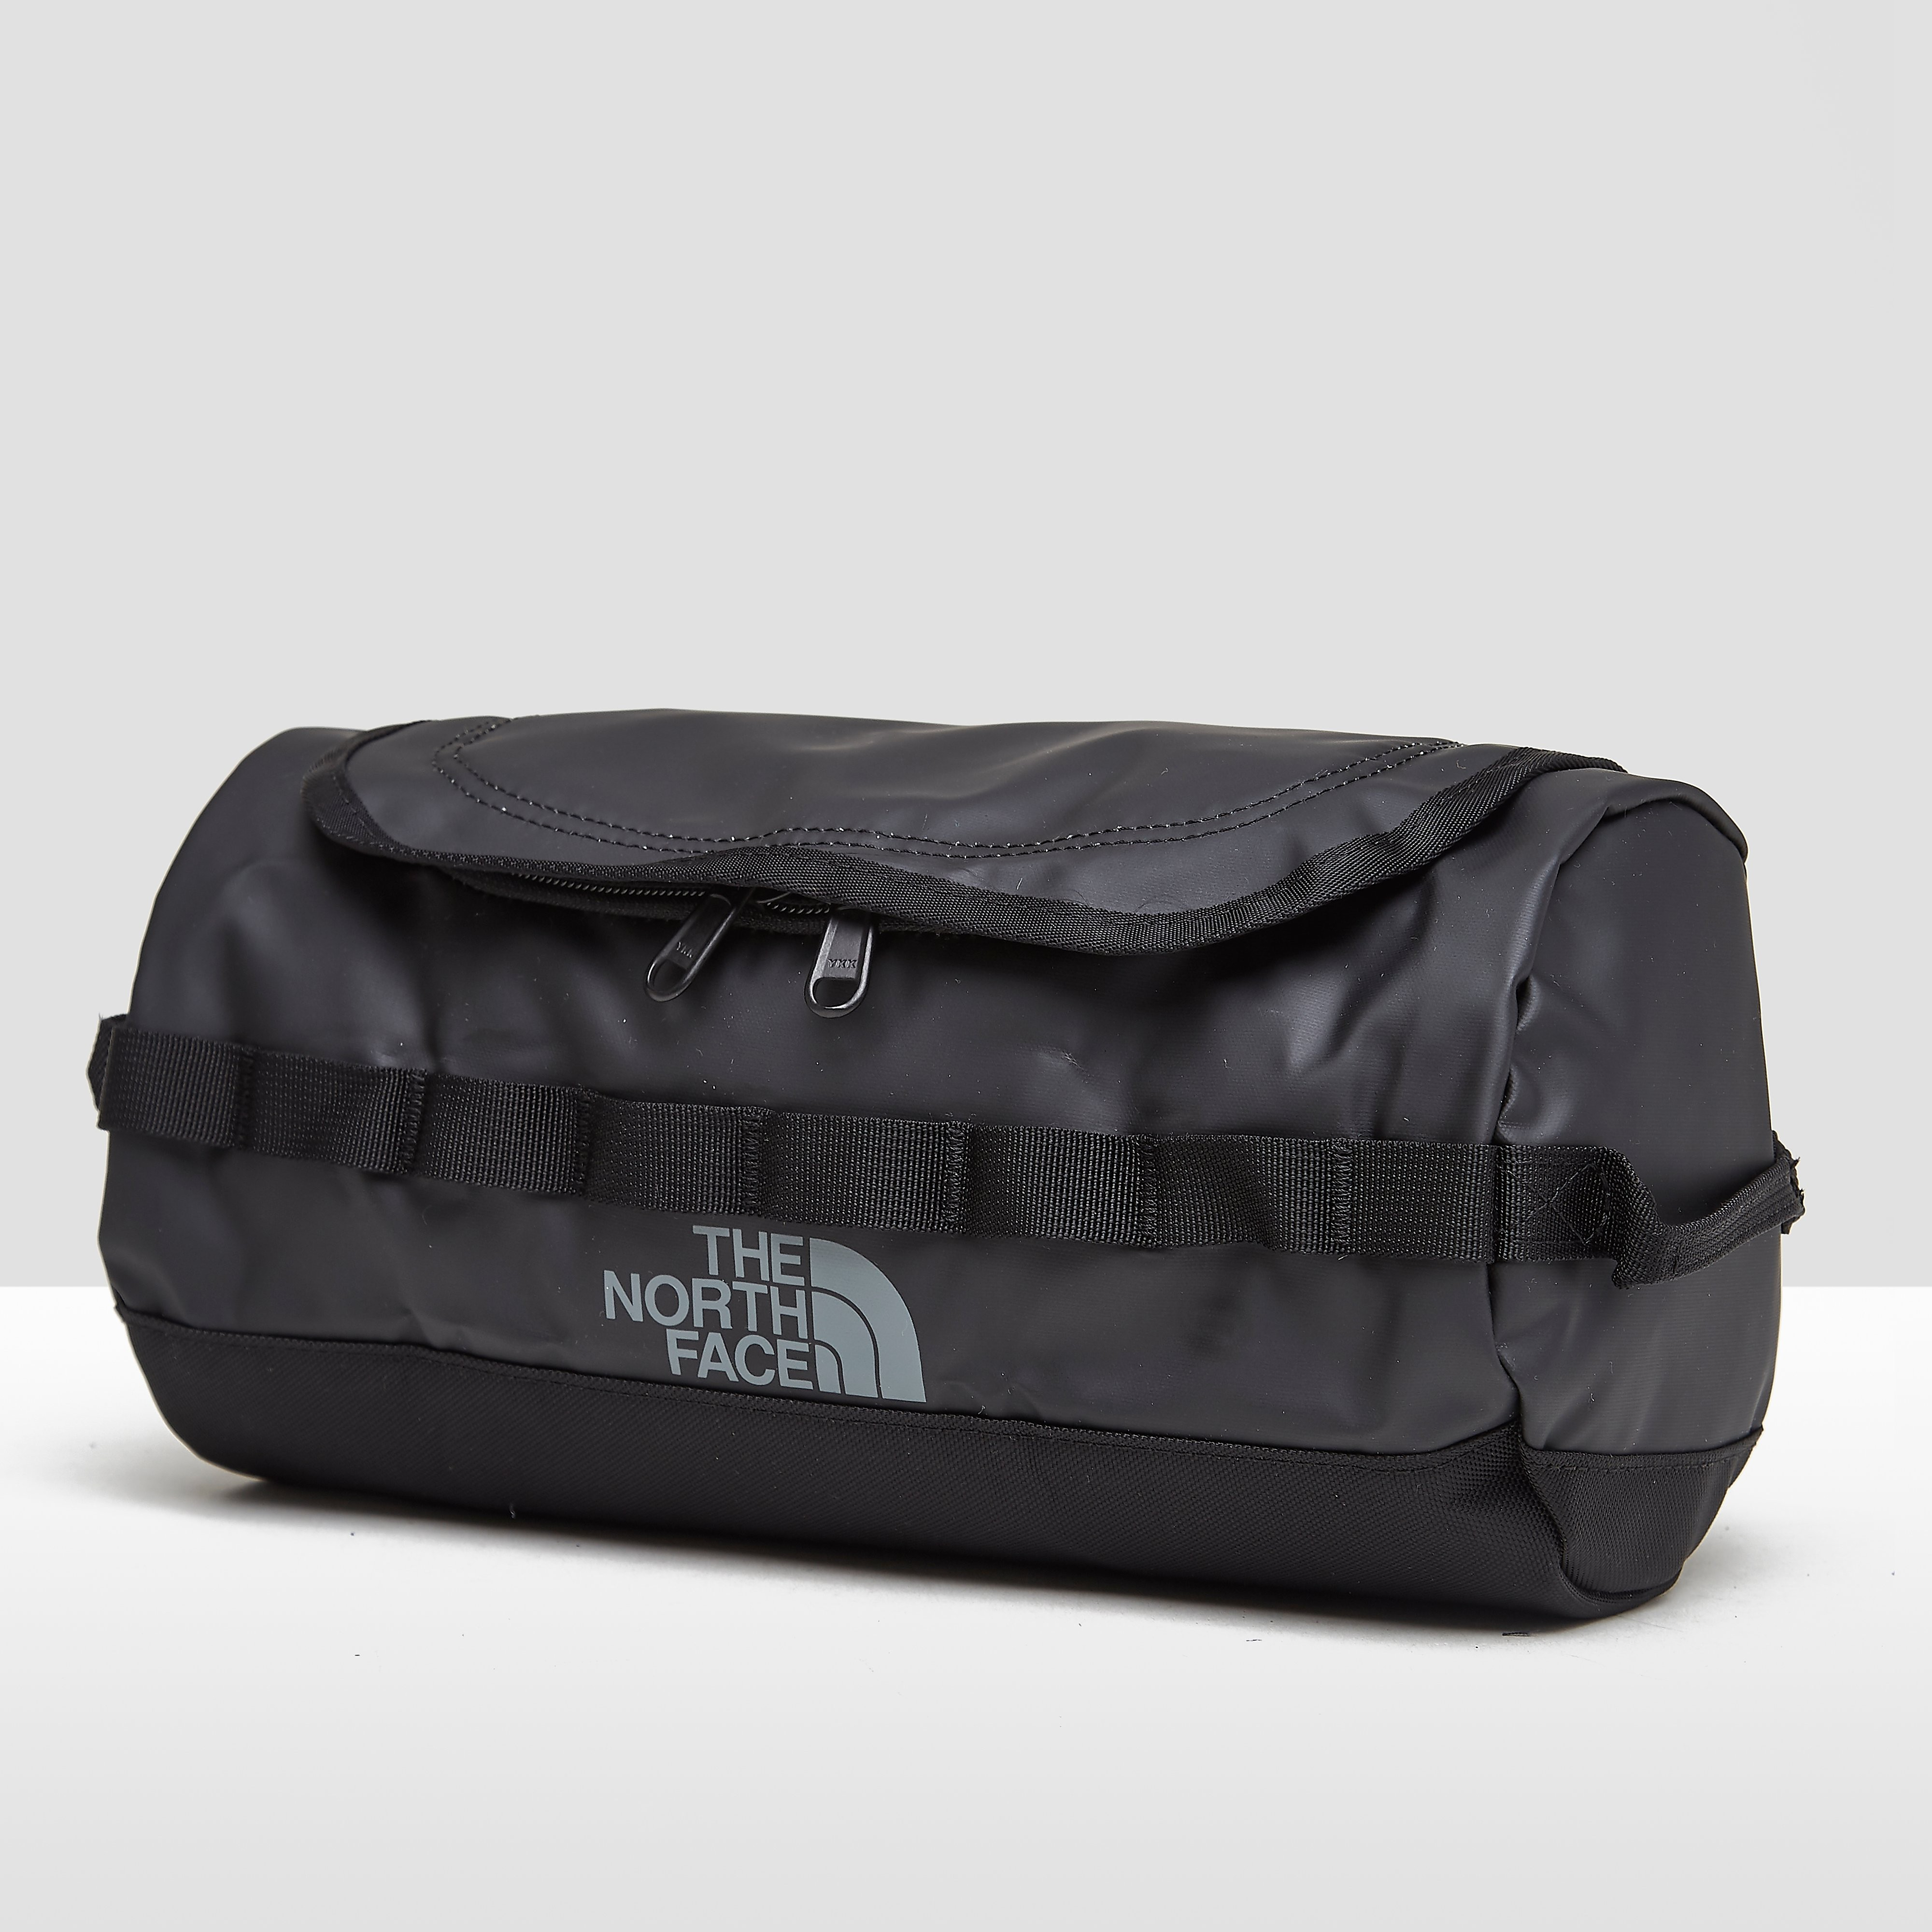 THE NORTH FACE BASE CAMP TRAVEL CANISTER TOILETTAS ZWART